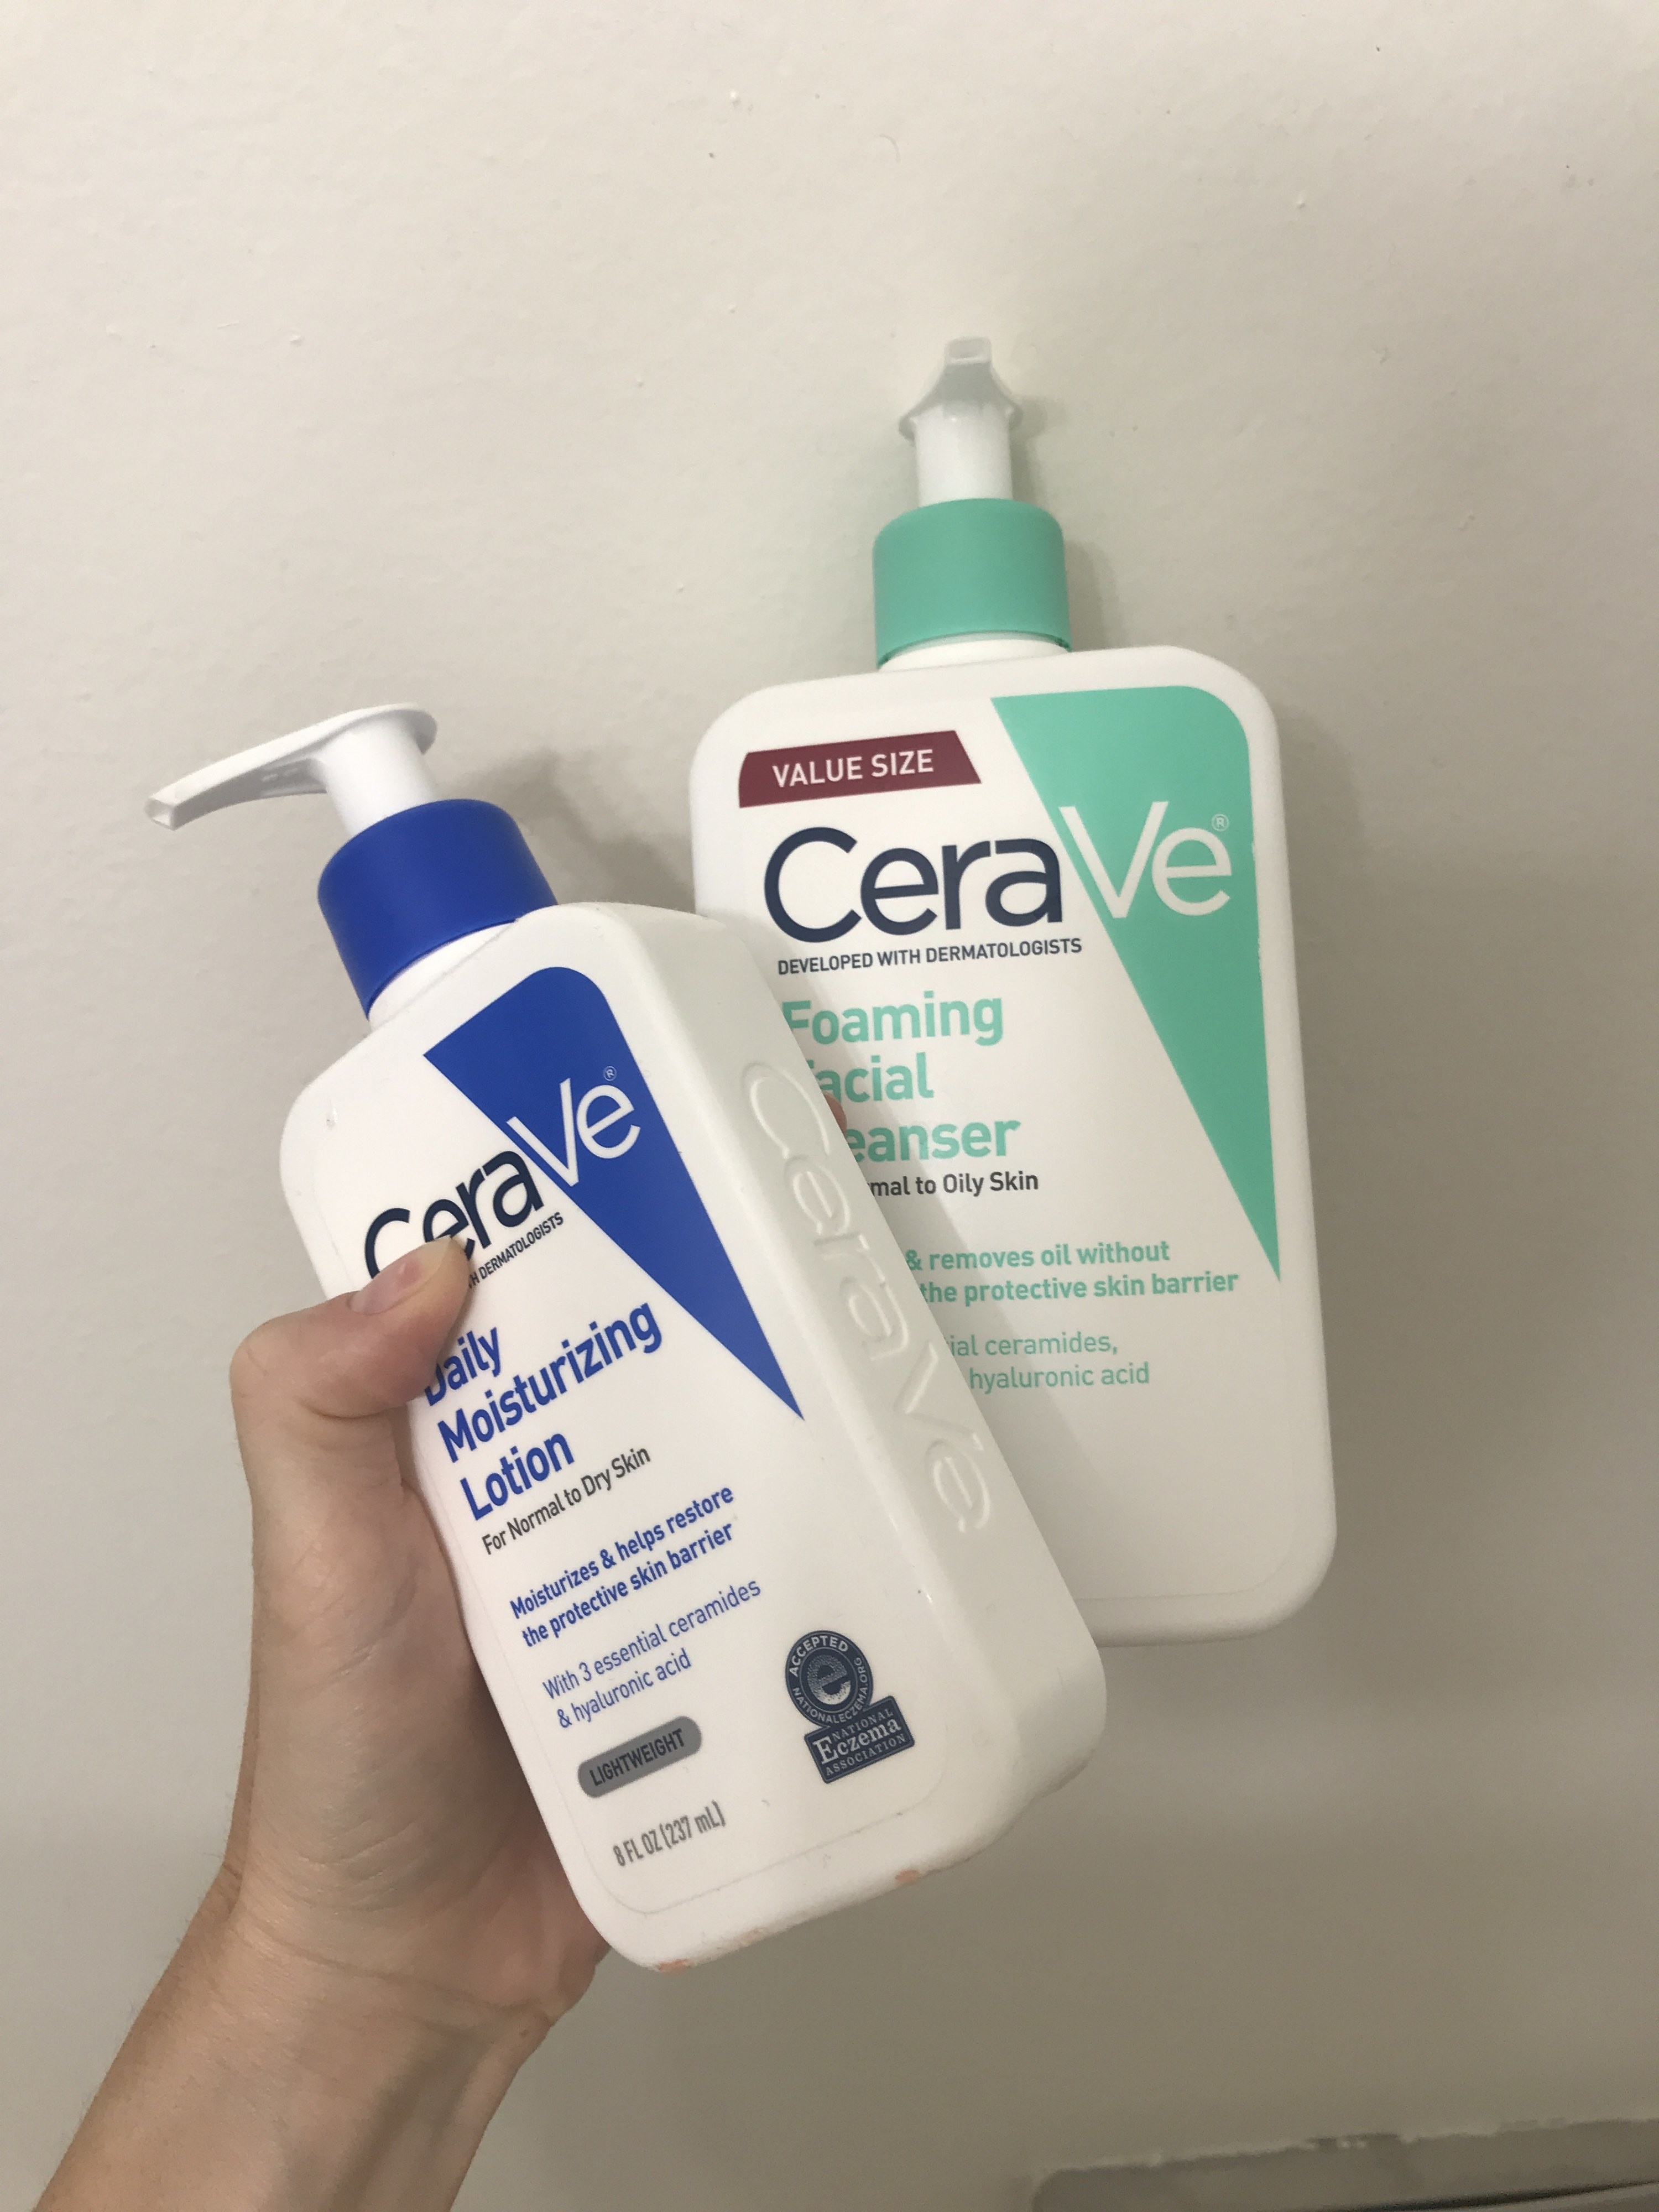 Hand holding Cera Ve products